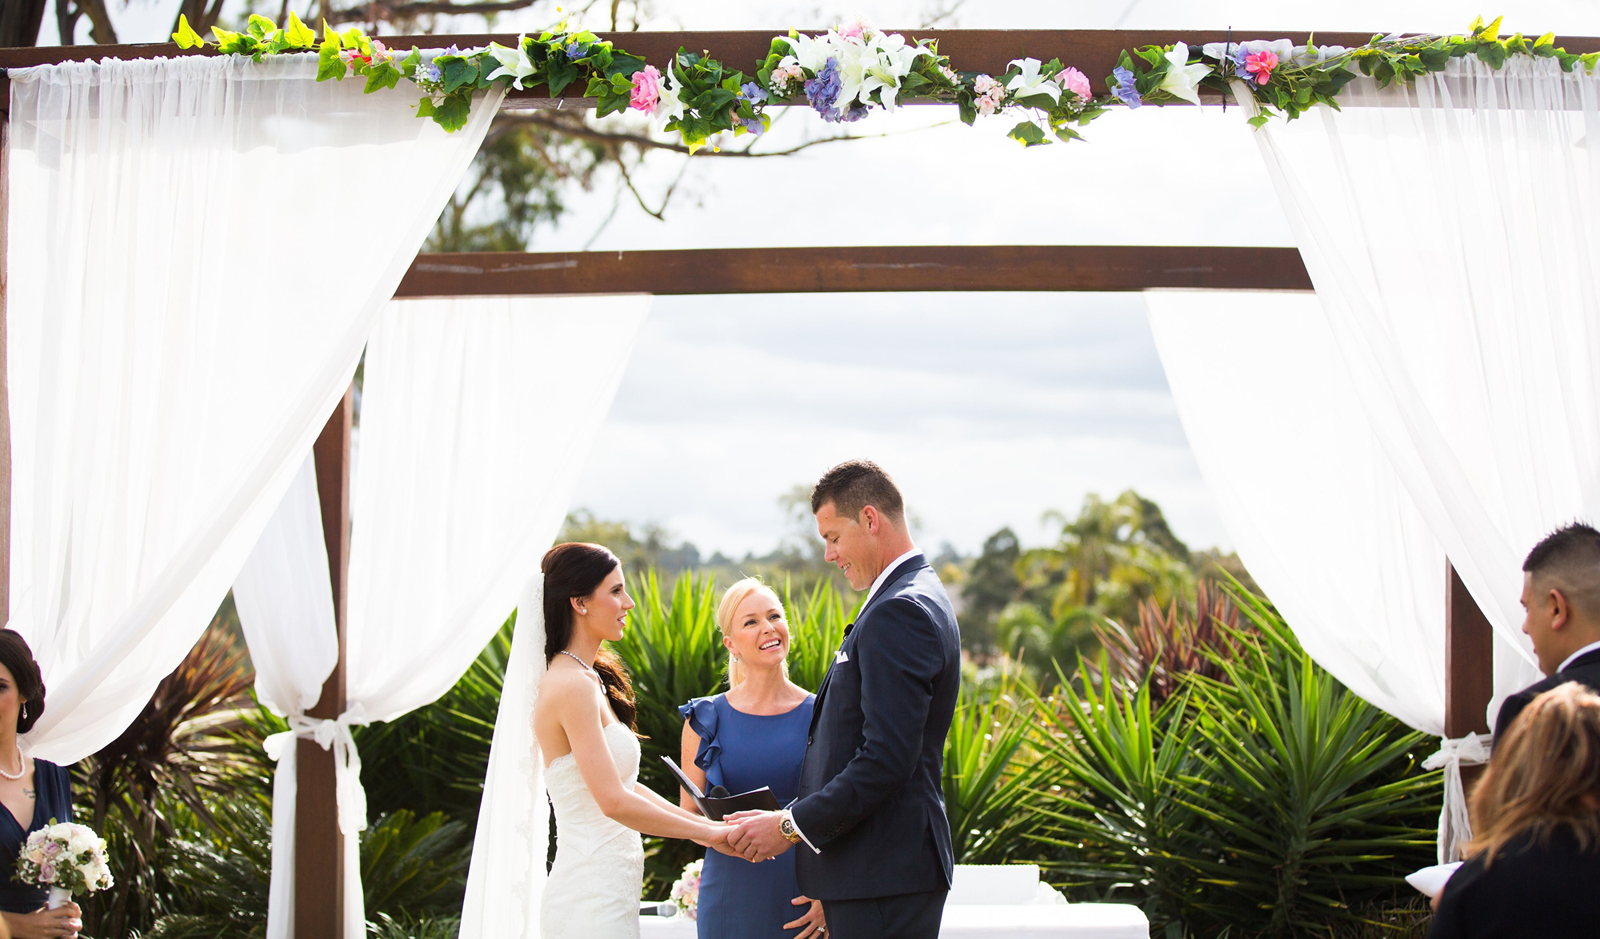 celebrant clarah luxford conducts a wedding ceremony